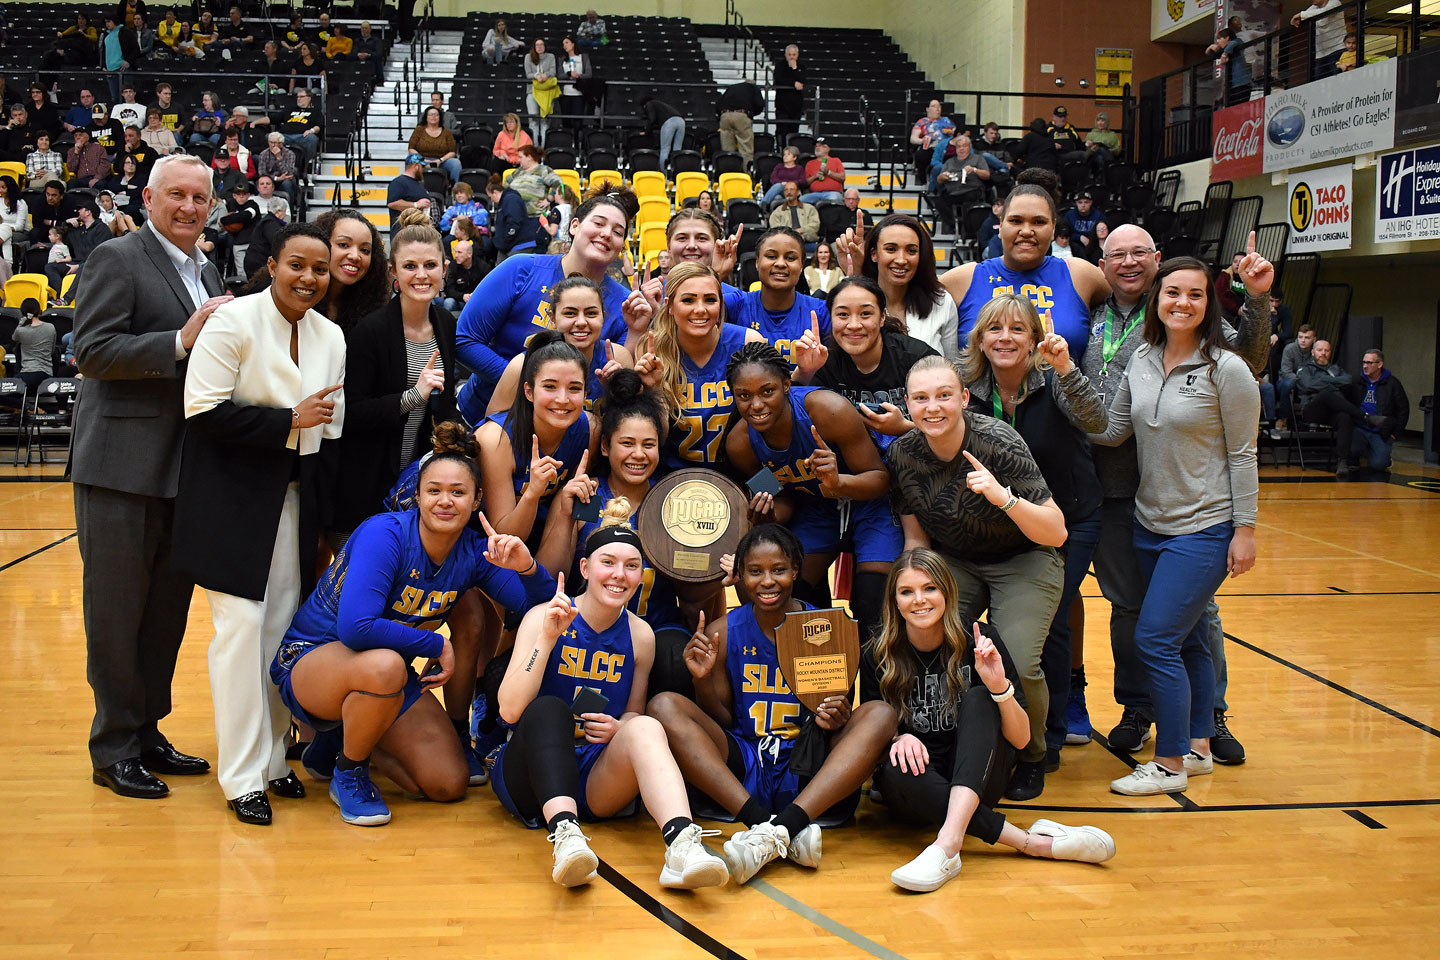 Women's basketball team with championship plaque